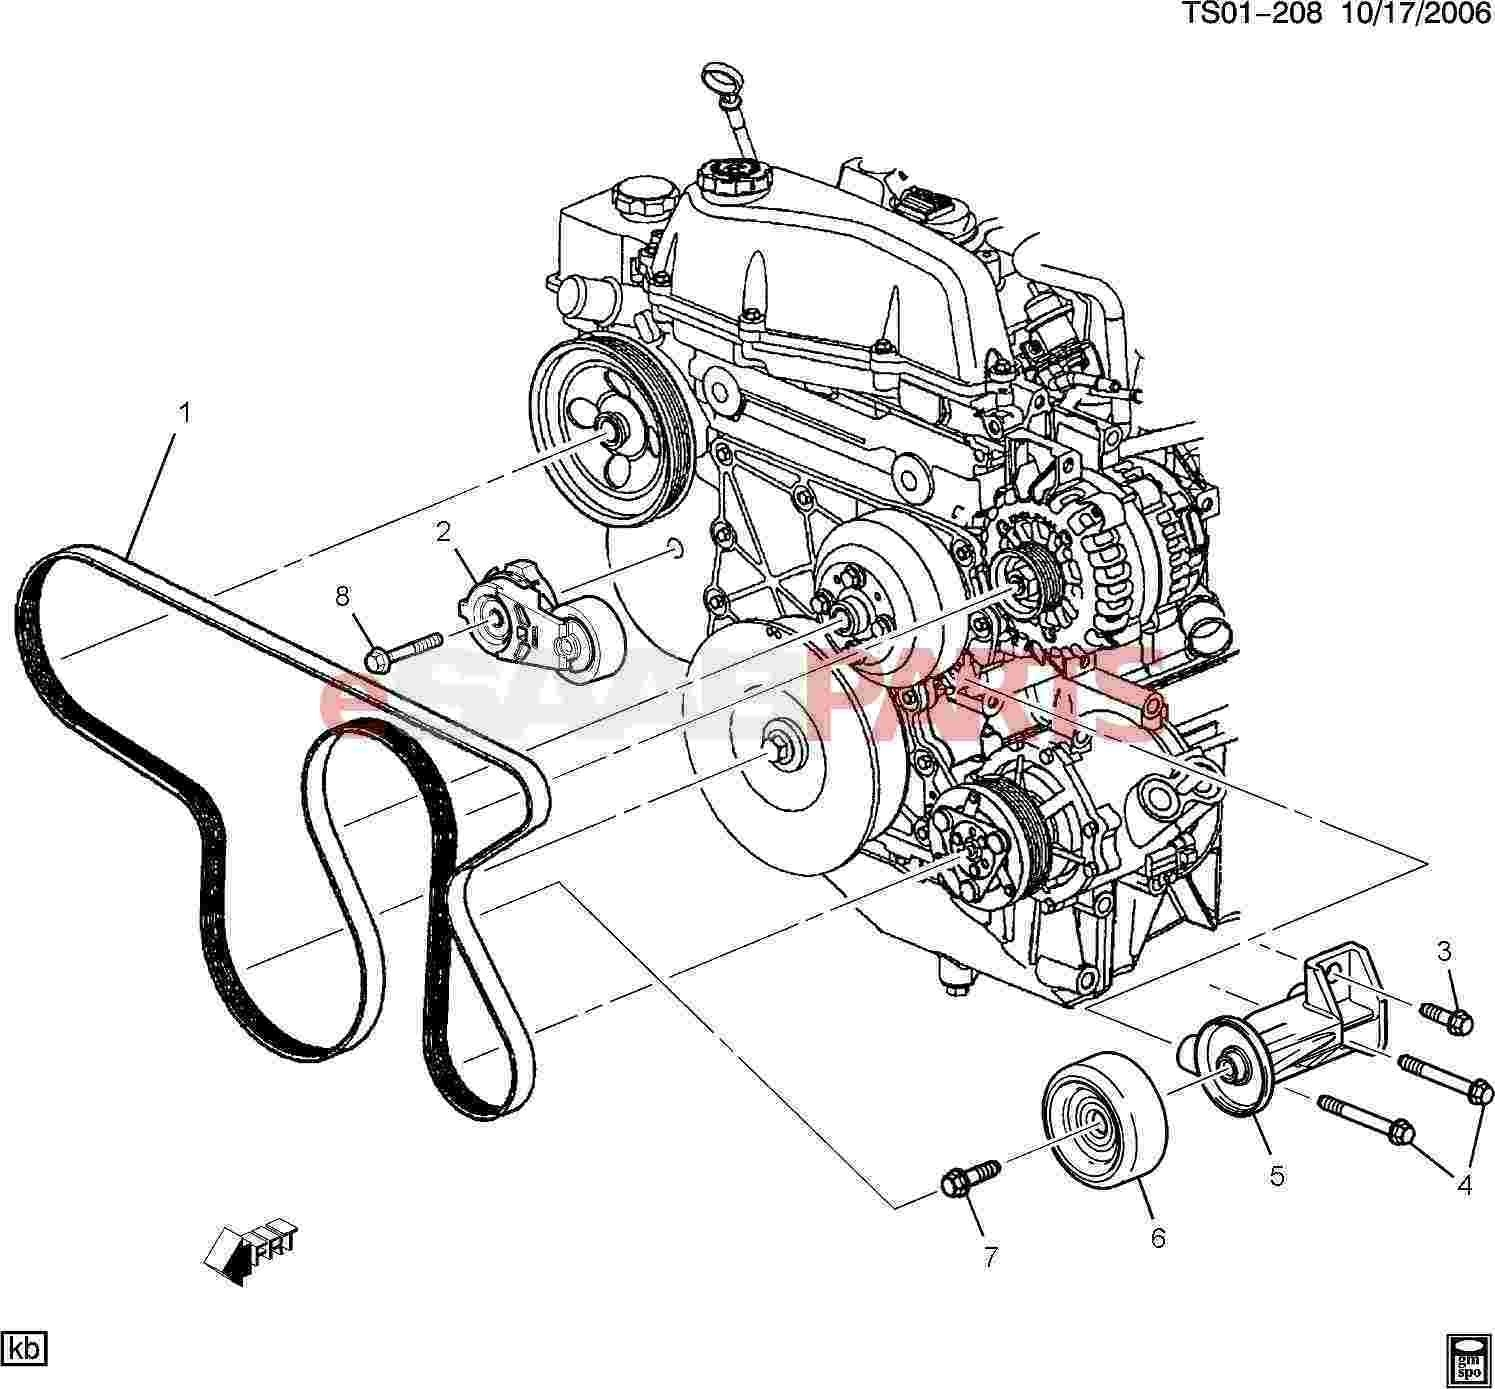 hight resolution of toyota 3 5 engine diagram wiring diagram expert 1997 toyota corolla engine diagram wiring diagram paper